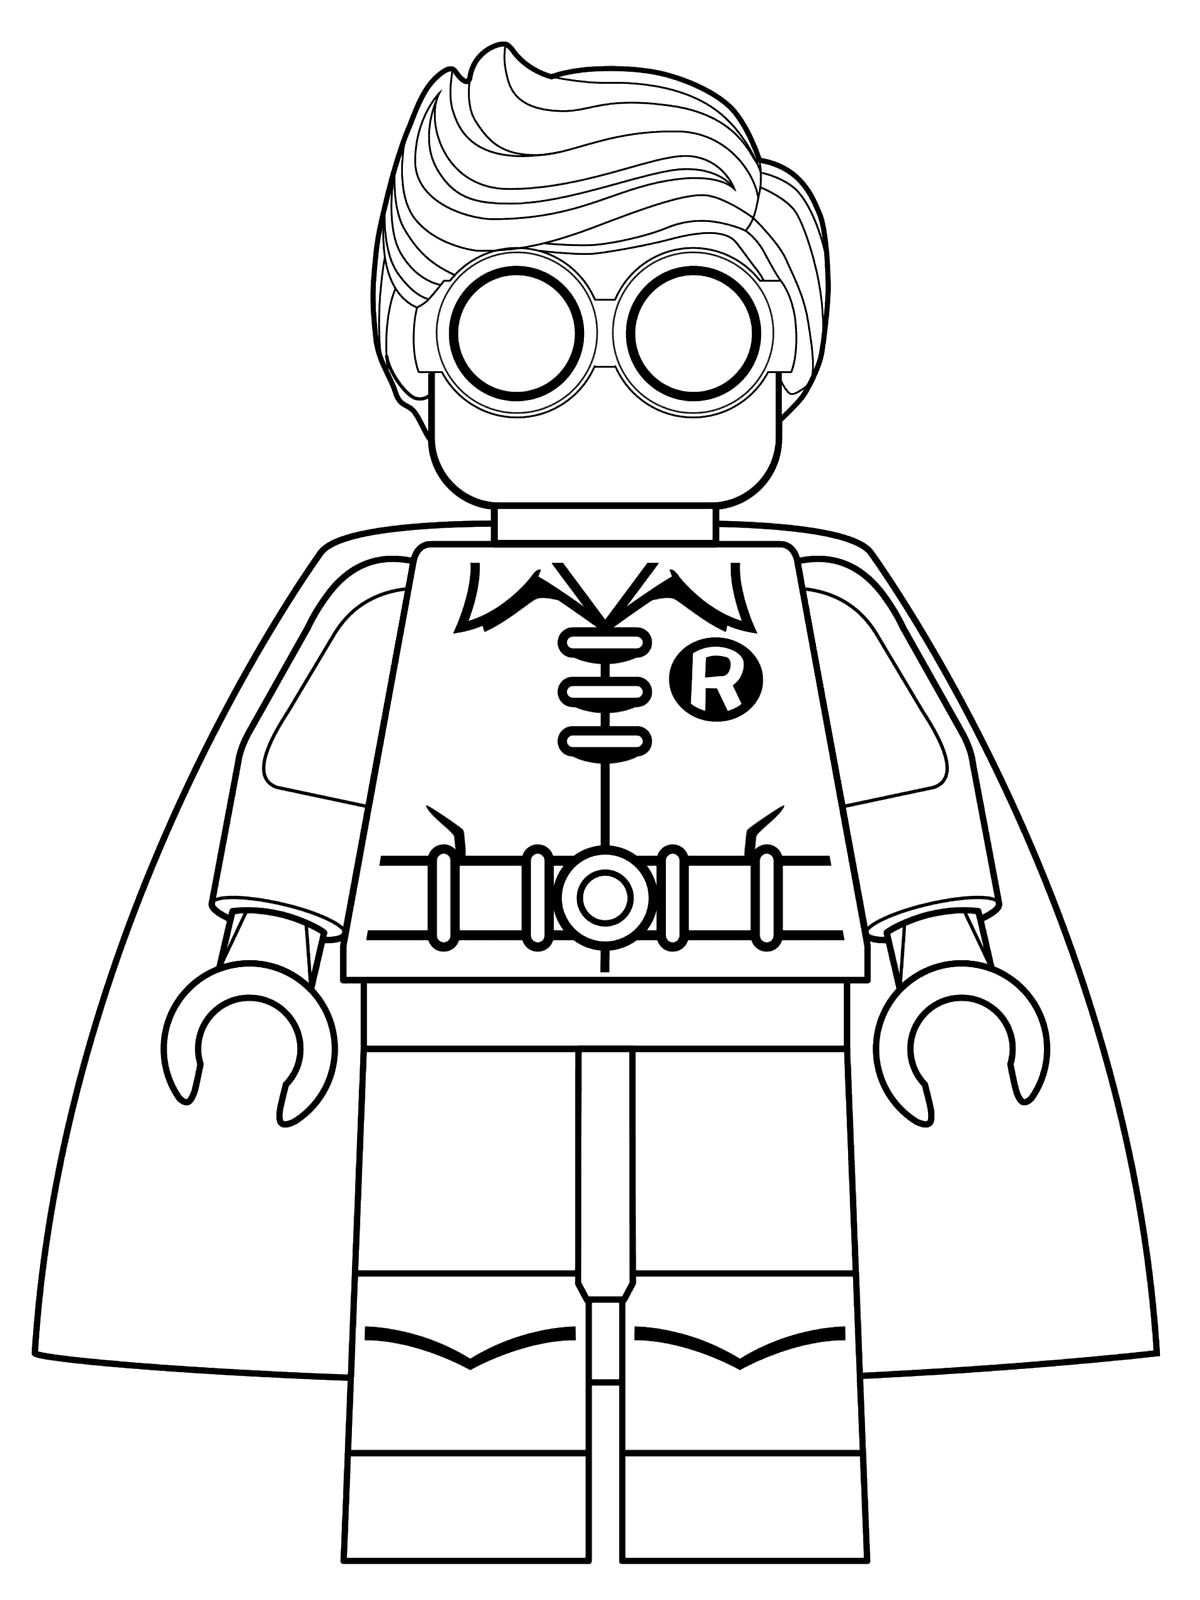 lego batman coloring pages lego batman coloring | Coloring Pages | Lego batman, Lego  lego batman coloring pages